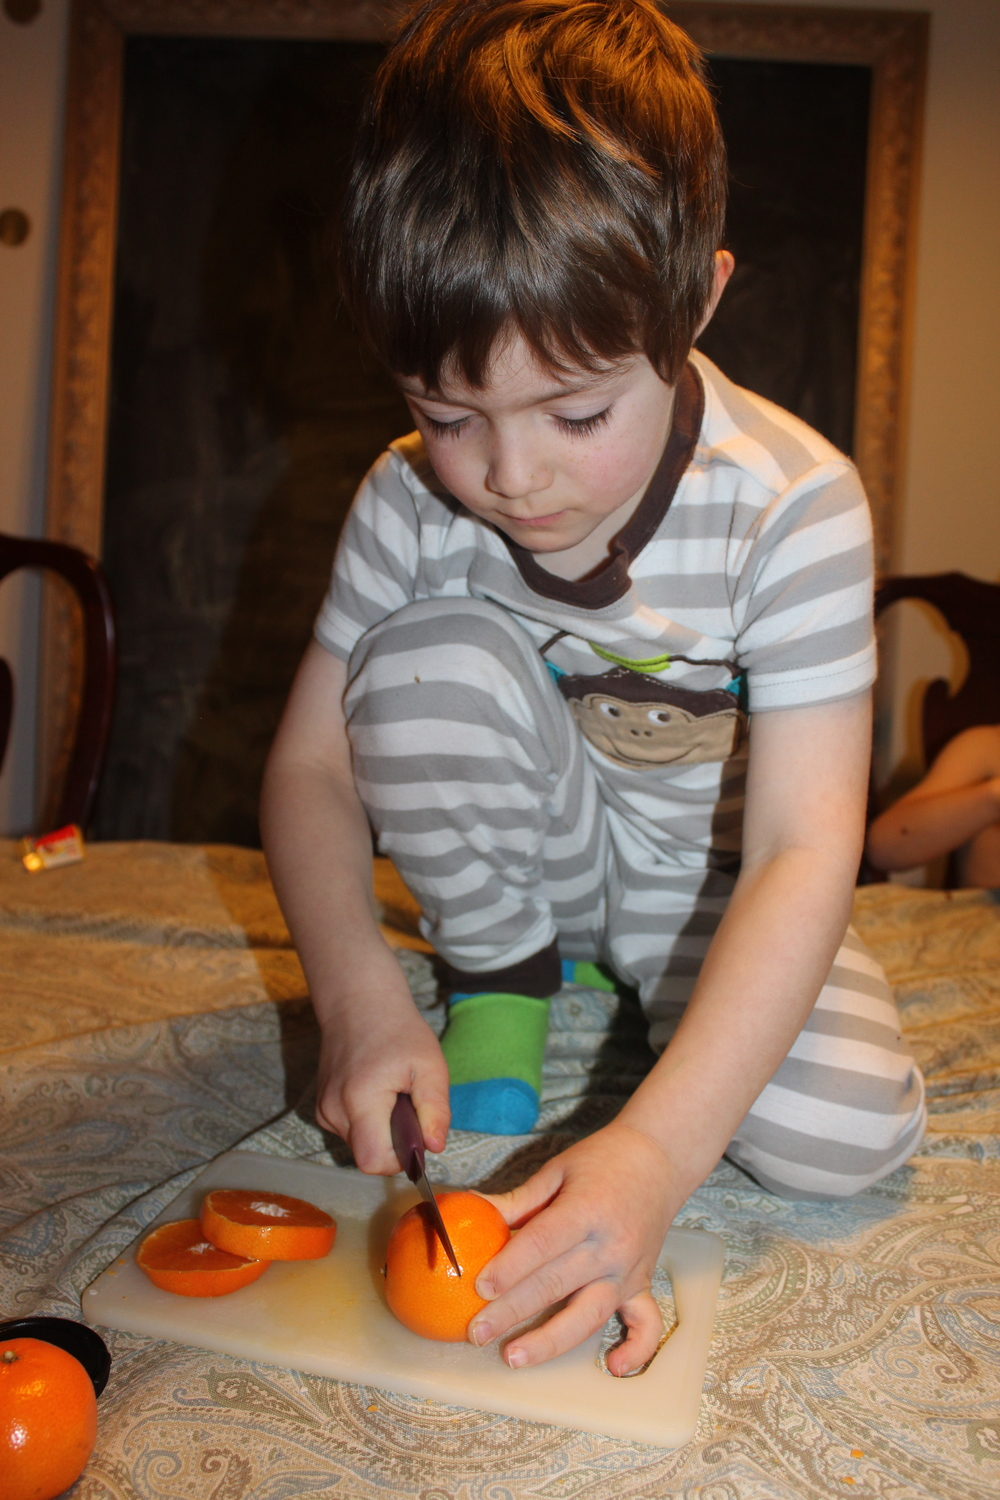 Embaressing that I allowed him to cut this way- but here you go-slicing the oranges